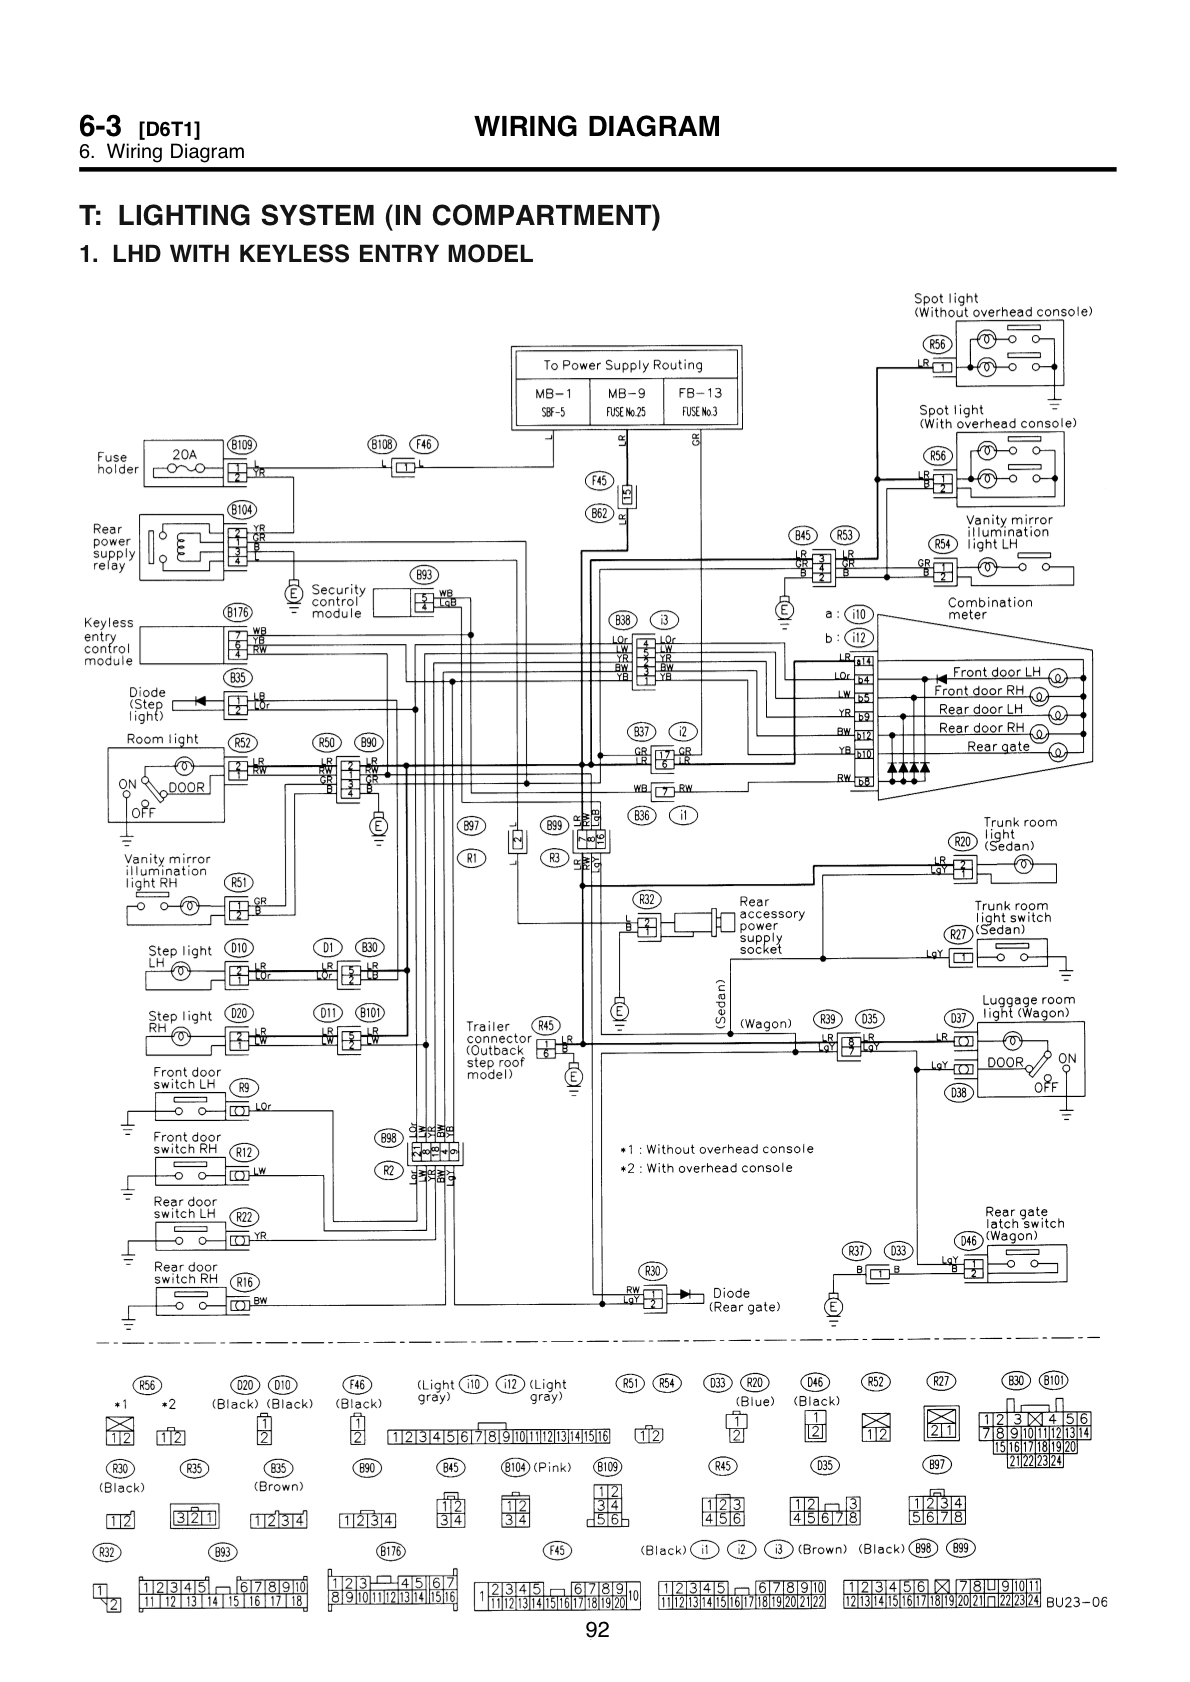 Subaru Forester Wiring Diagram 2003 Indicatator Trusted. 98 Subaru Alternator Wiring Data Diagrams \u2022 Forester Diagram 2003 Indicatator. Subaru. 2003 Subaru Forester Ignition Wiring Diagram At Scoala.co